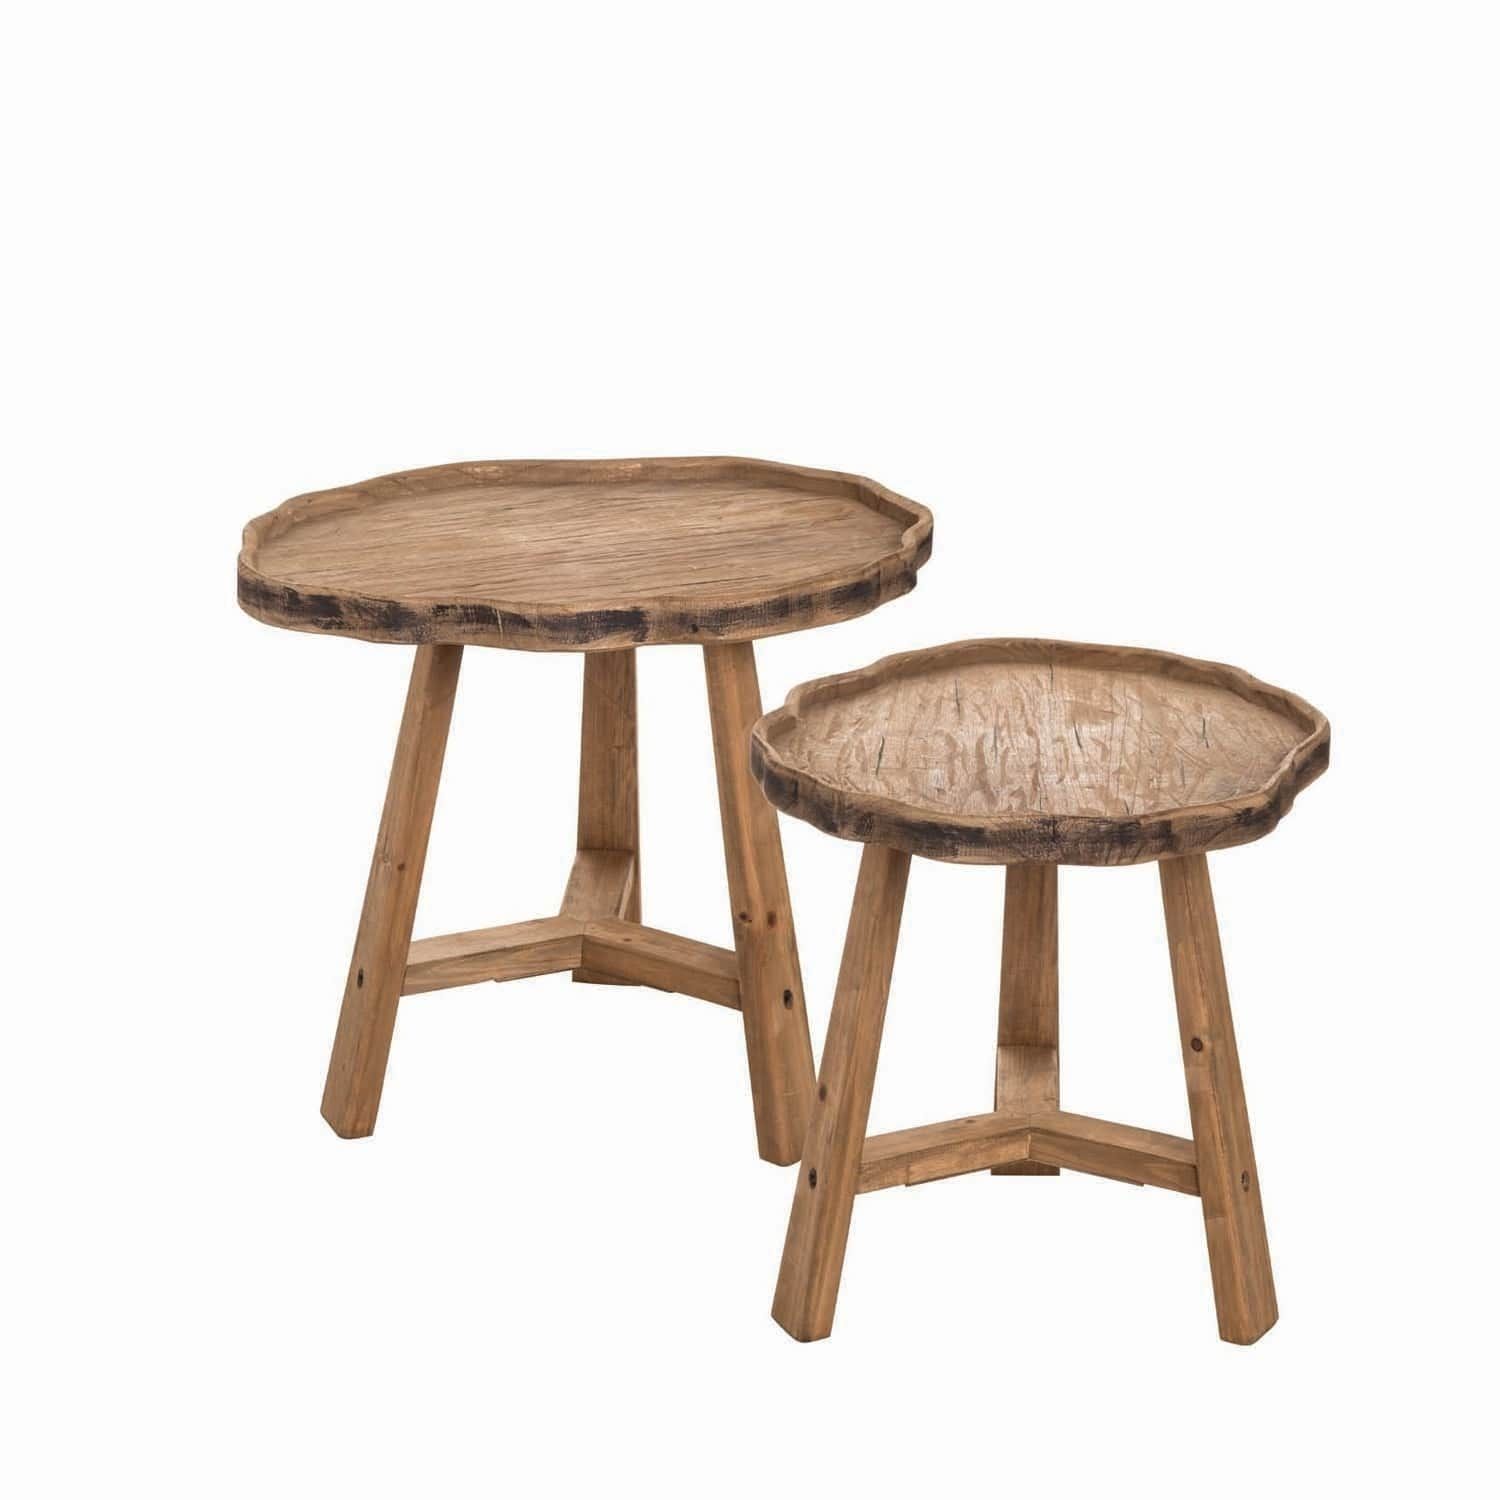 live edge accent tables set free shipping today wood table furniture legs oblong coffee small occasional living room mid century modern bookcase kitchen lamp uttermost wall art